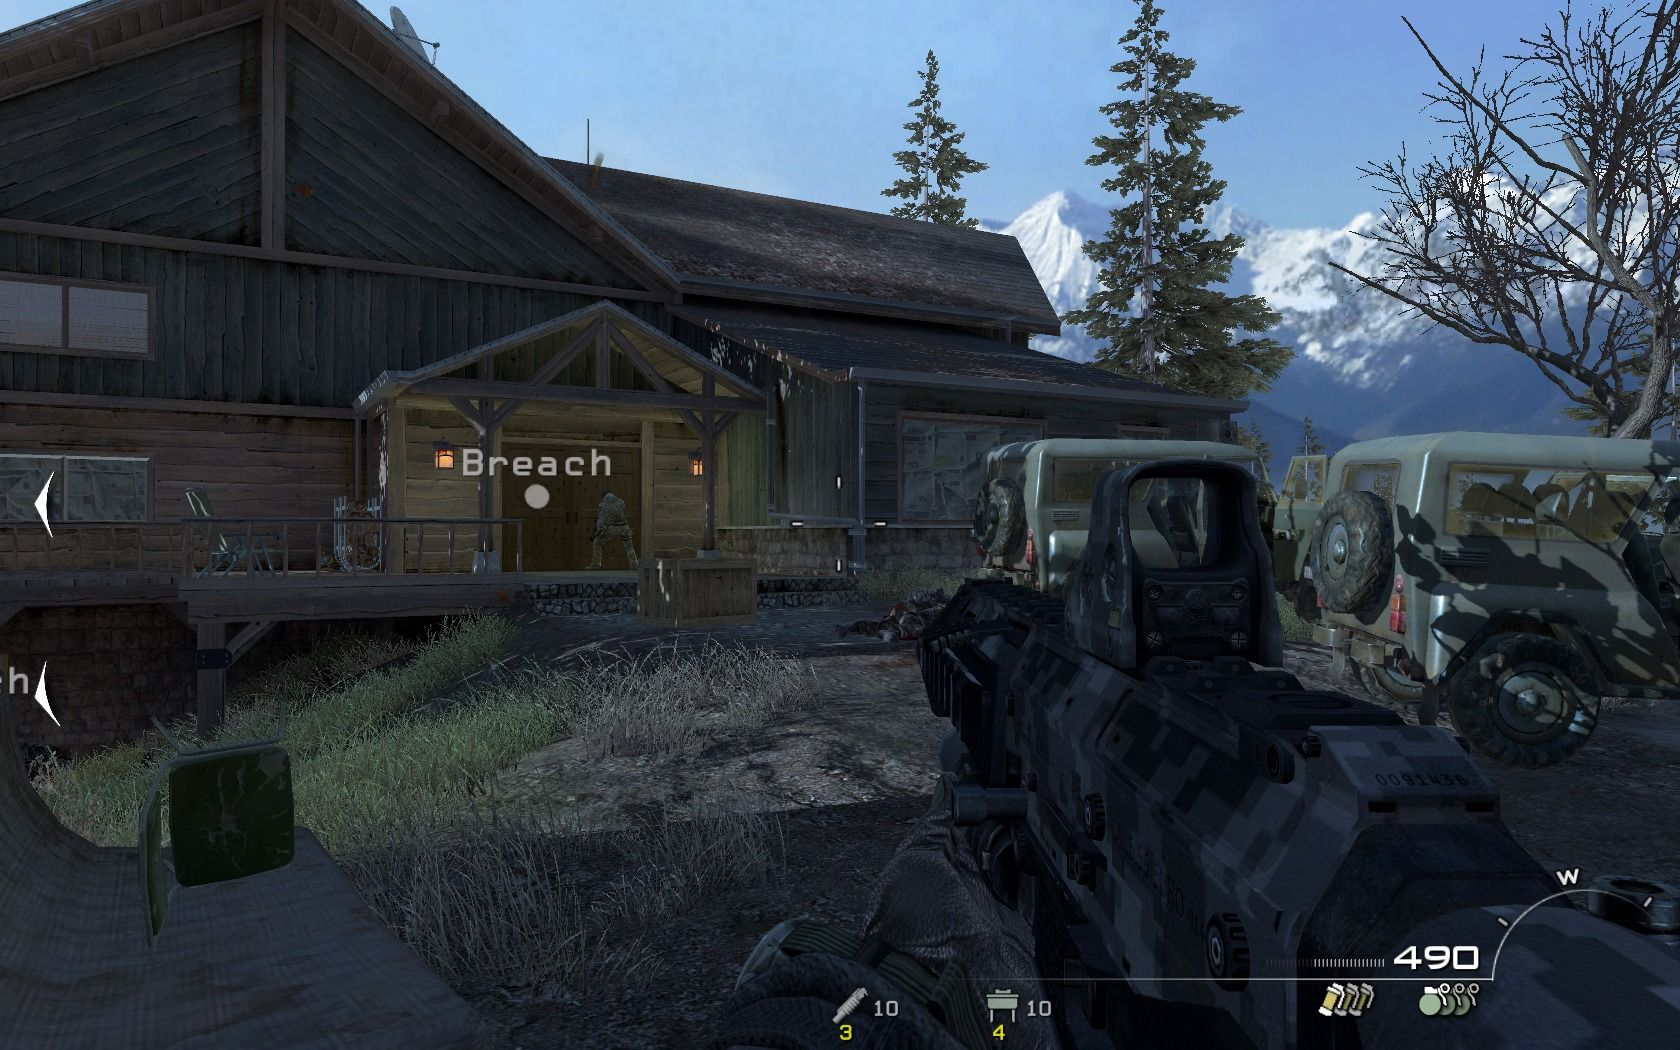 Call of Duty: Modern Warfare 2 Windows Breaching doors or walls with explosive will create a slow-motion mode allowing you to pick your targets clean on your entry.